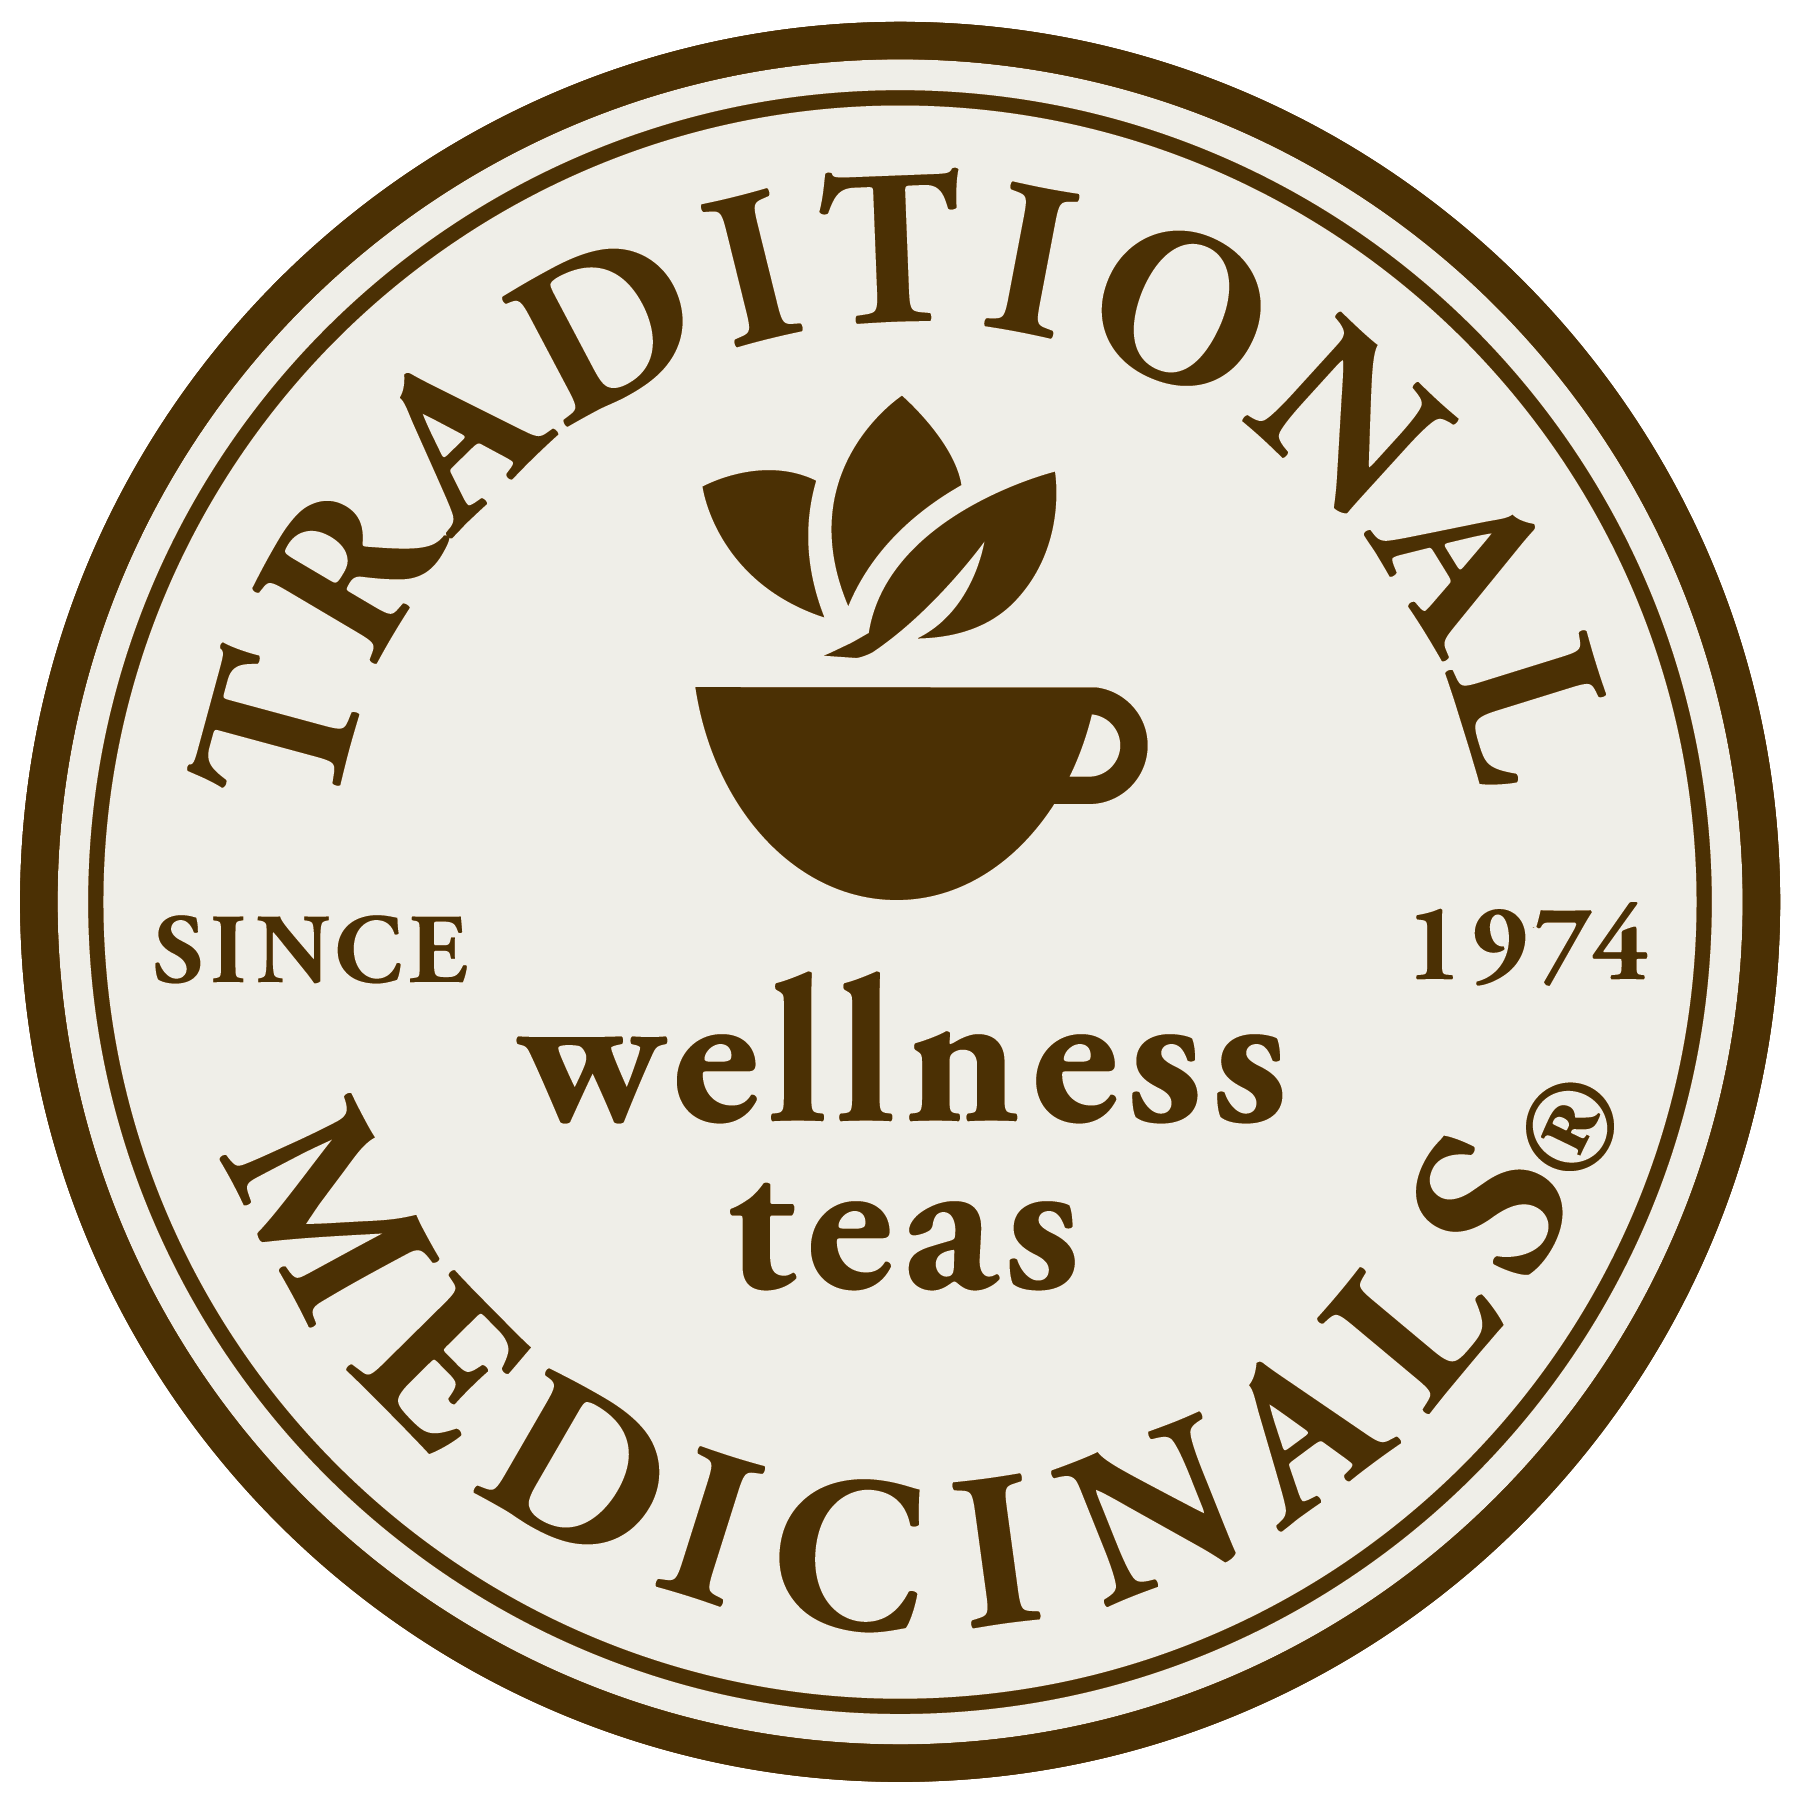 traditional medicinals confirmed logo 2019 NEW LOGO_generic.png